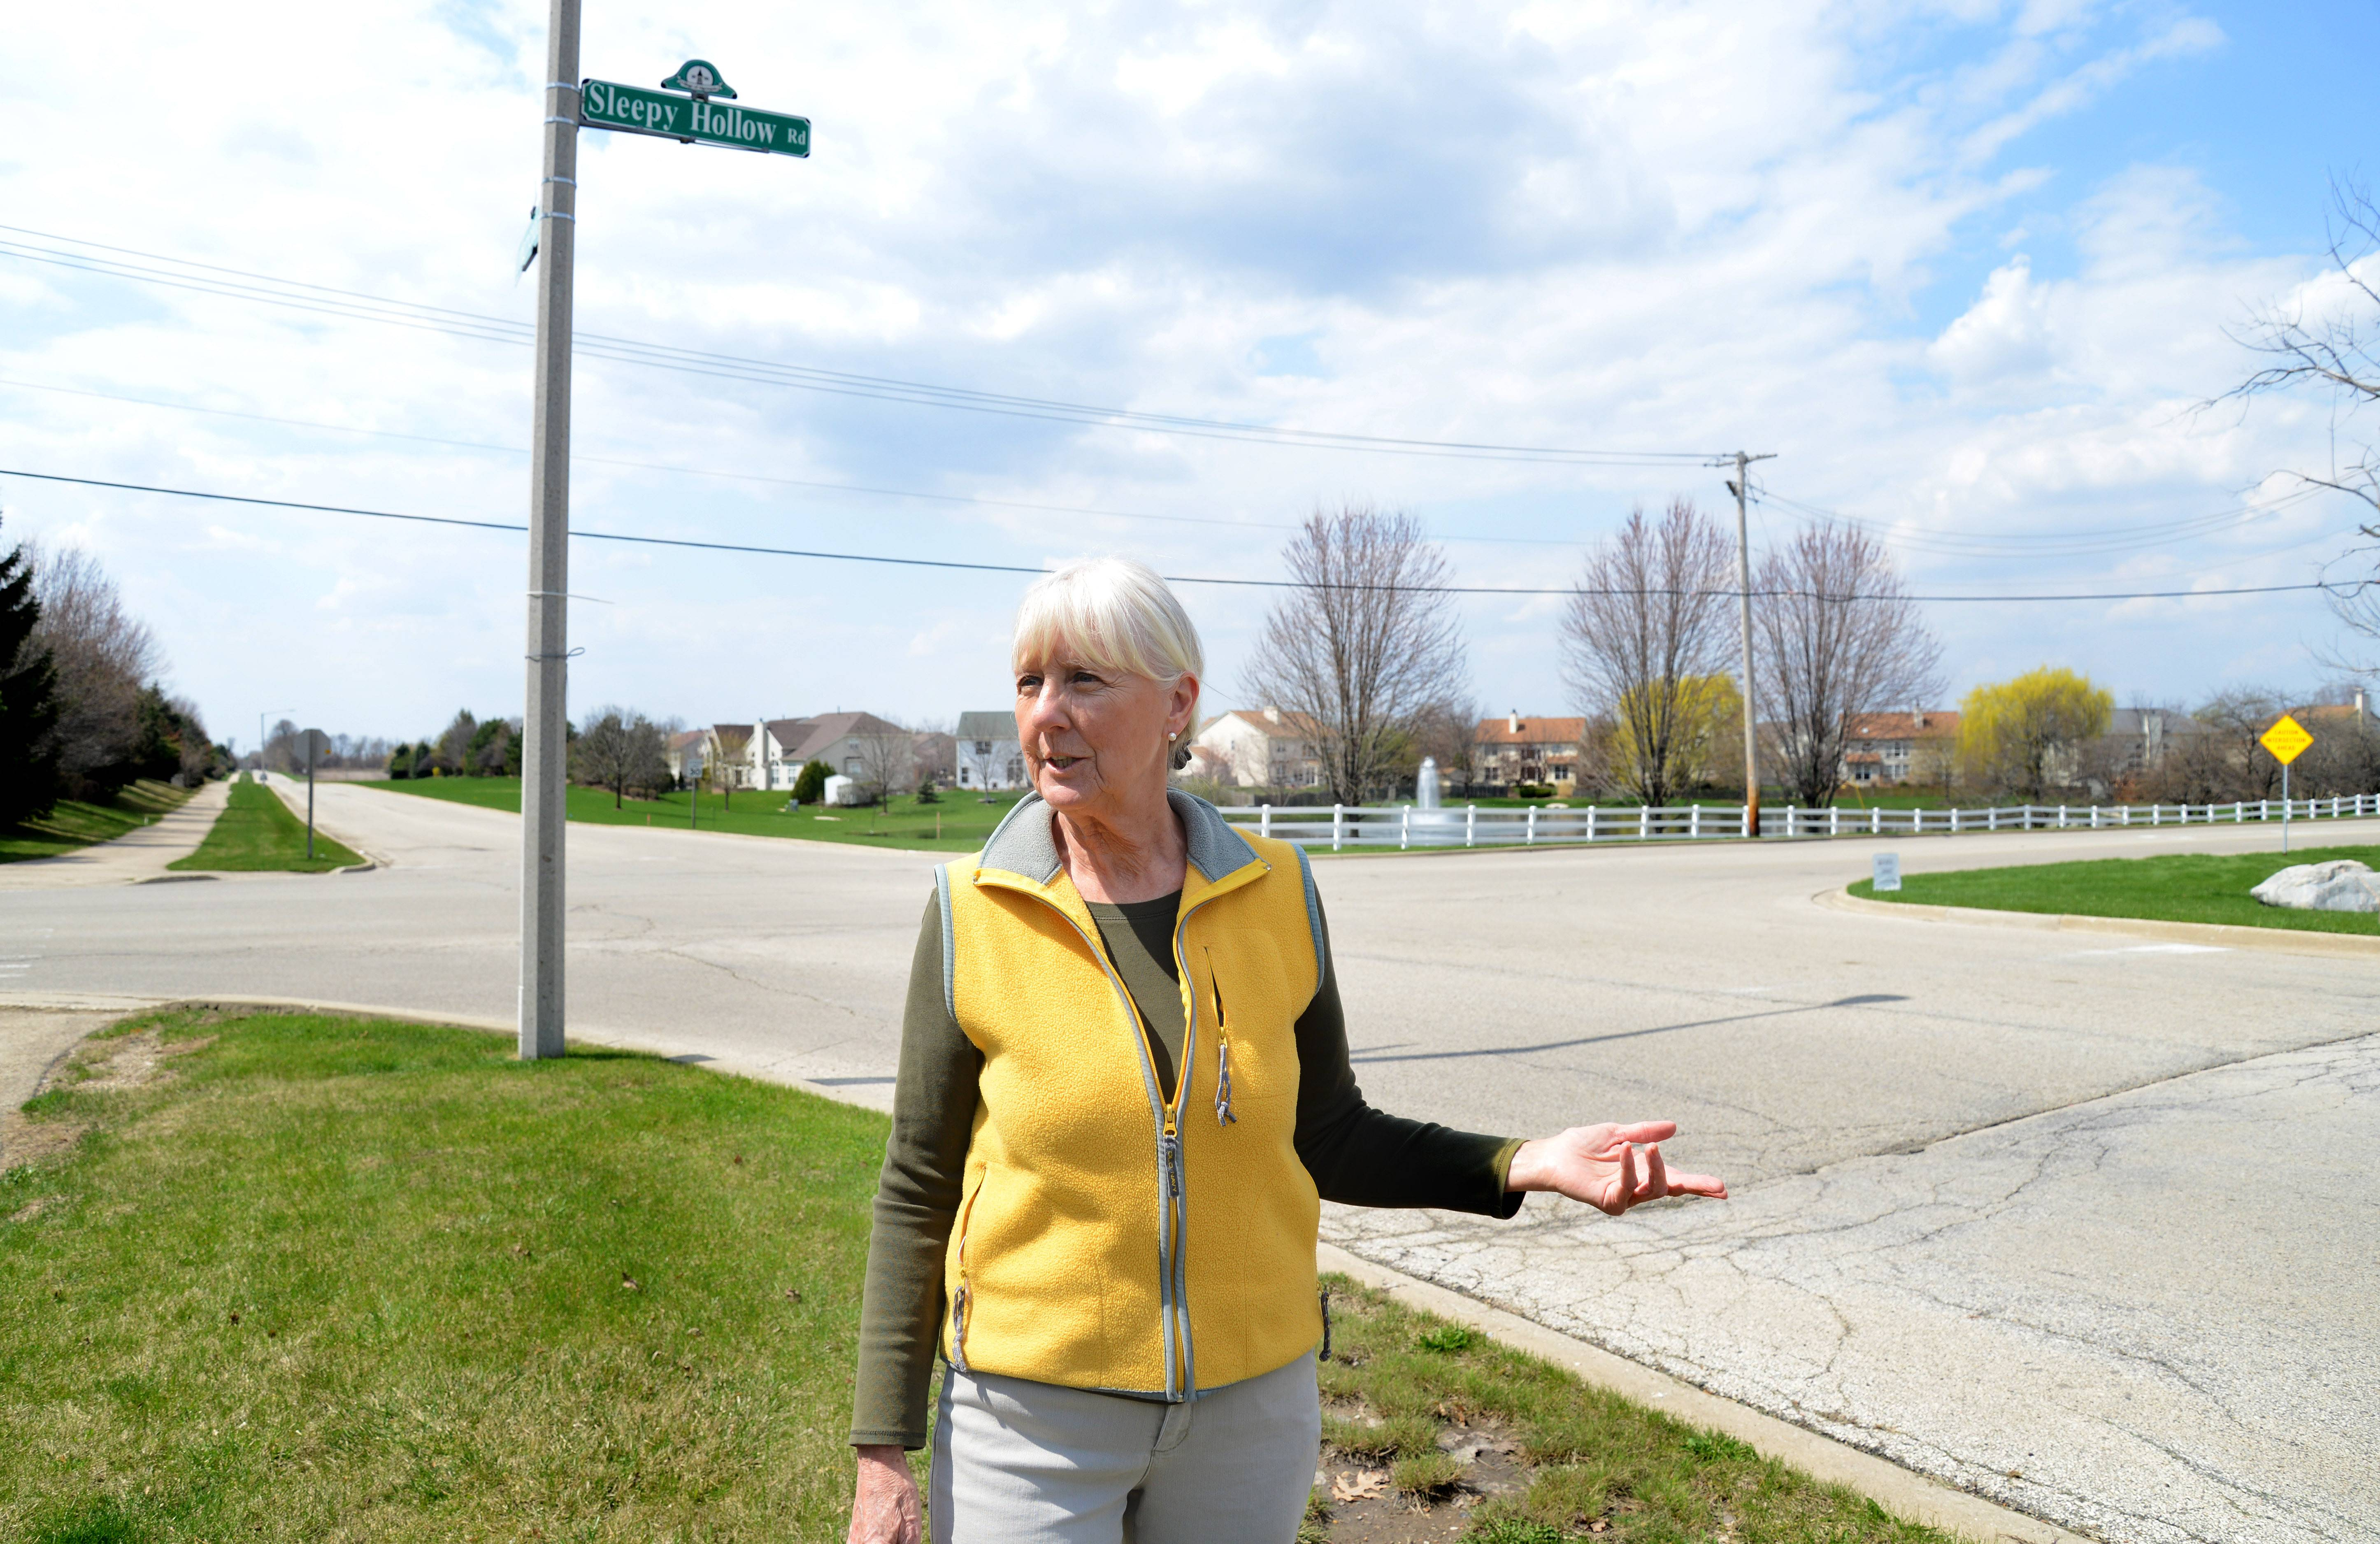 AT DAILYHERALD.COM/MORE: Toll road opponent Jo Ann Fritz of West Dundee stands at the intersection of Sleepy Hollow Road and Longmeadow Parkway in Algonquin and talks about how the road will affect all the homeowners along its path.